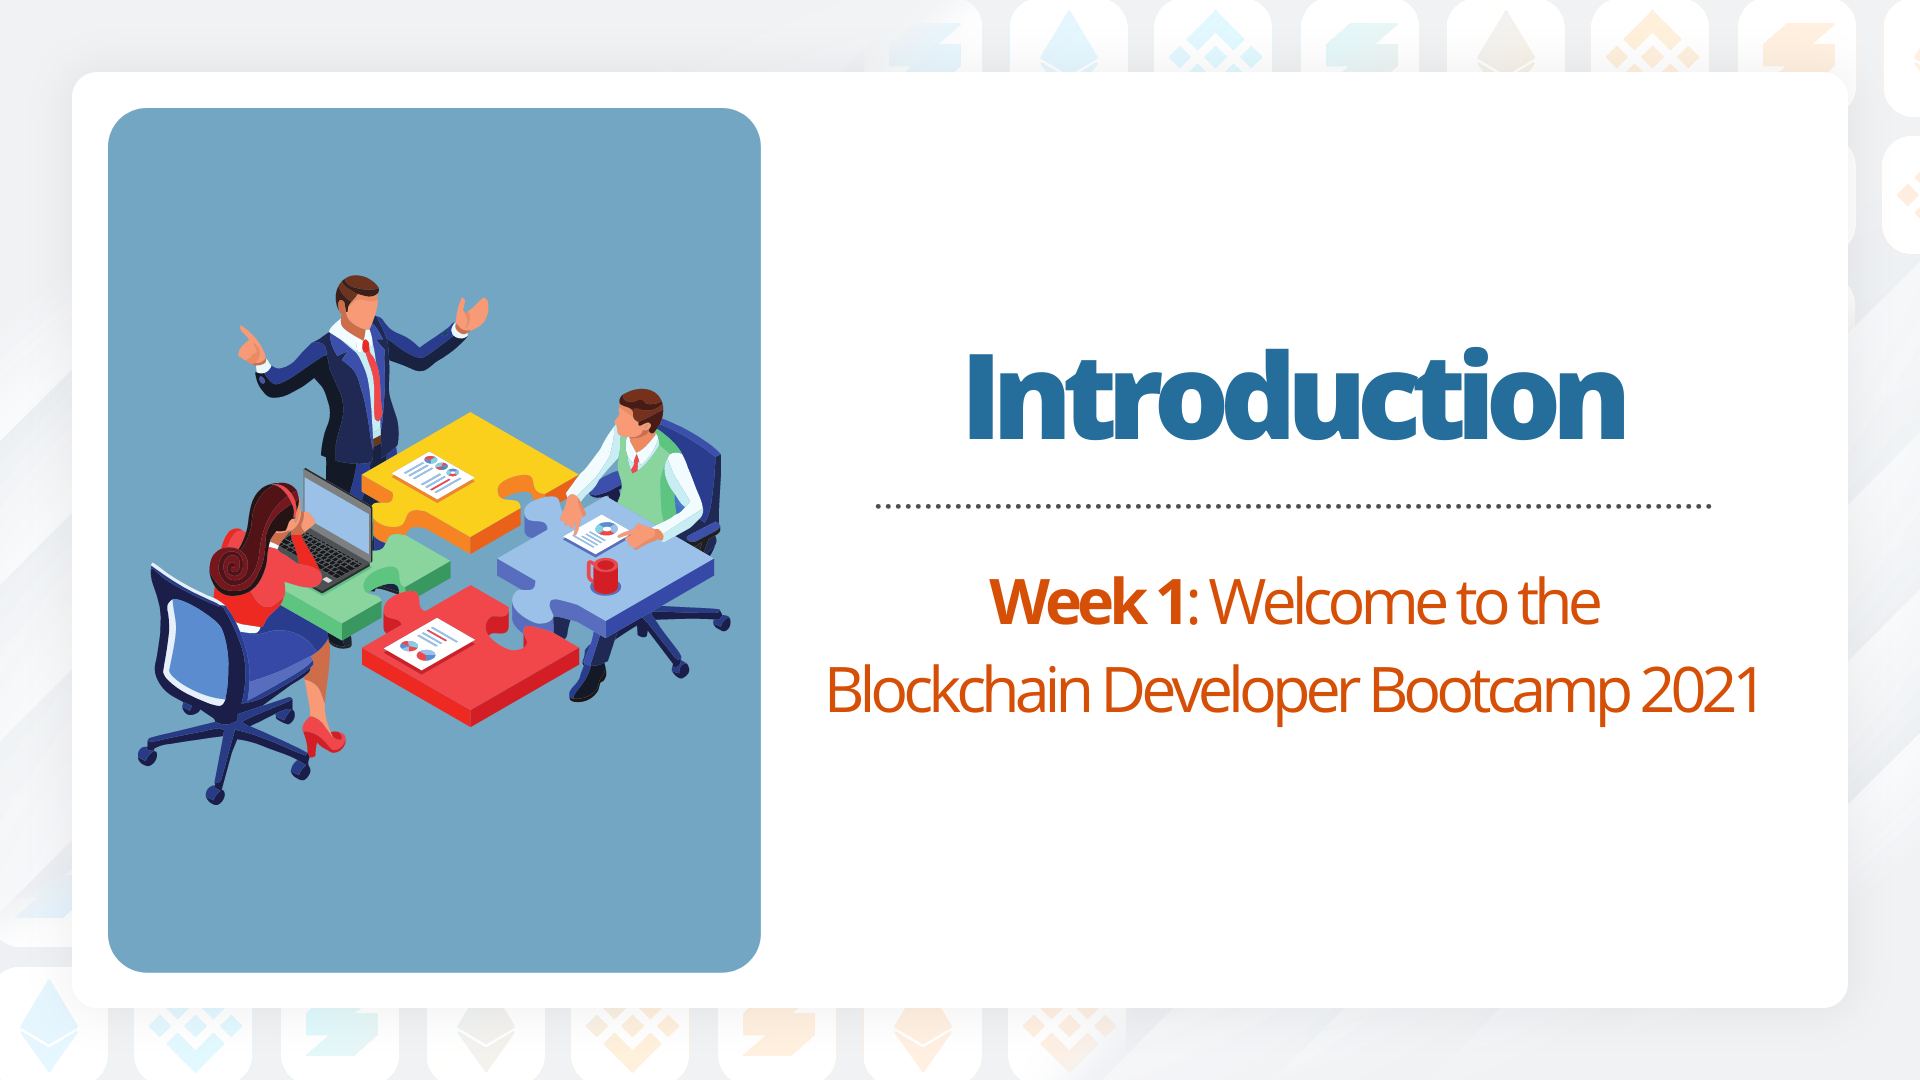 Welcome to the Blockchain Developer Bootcamp 2021